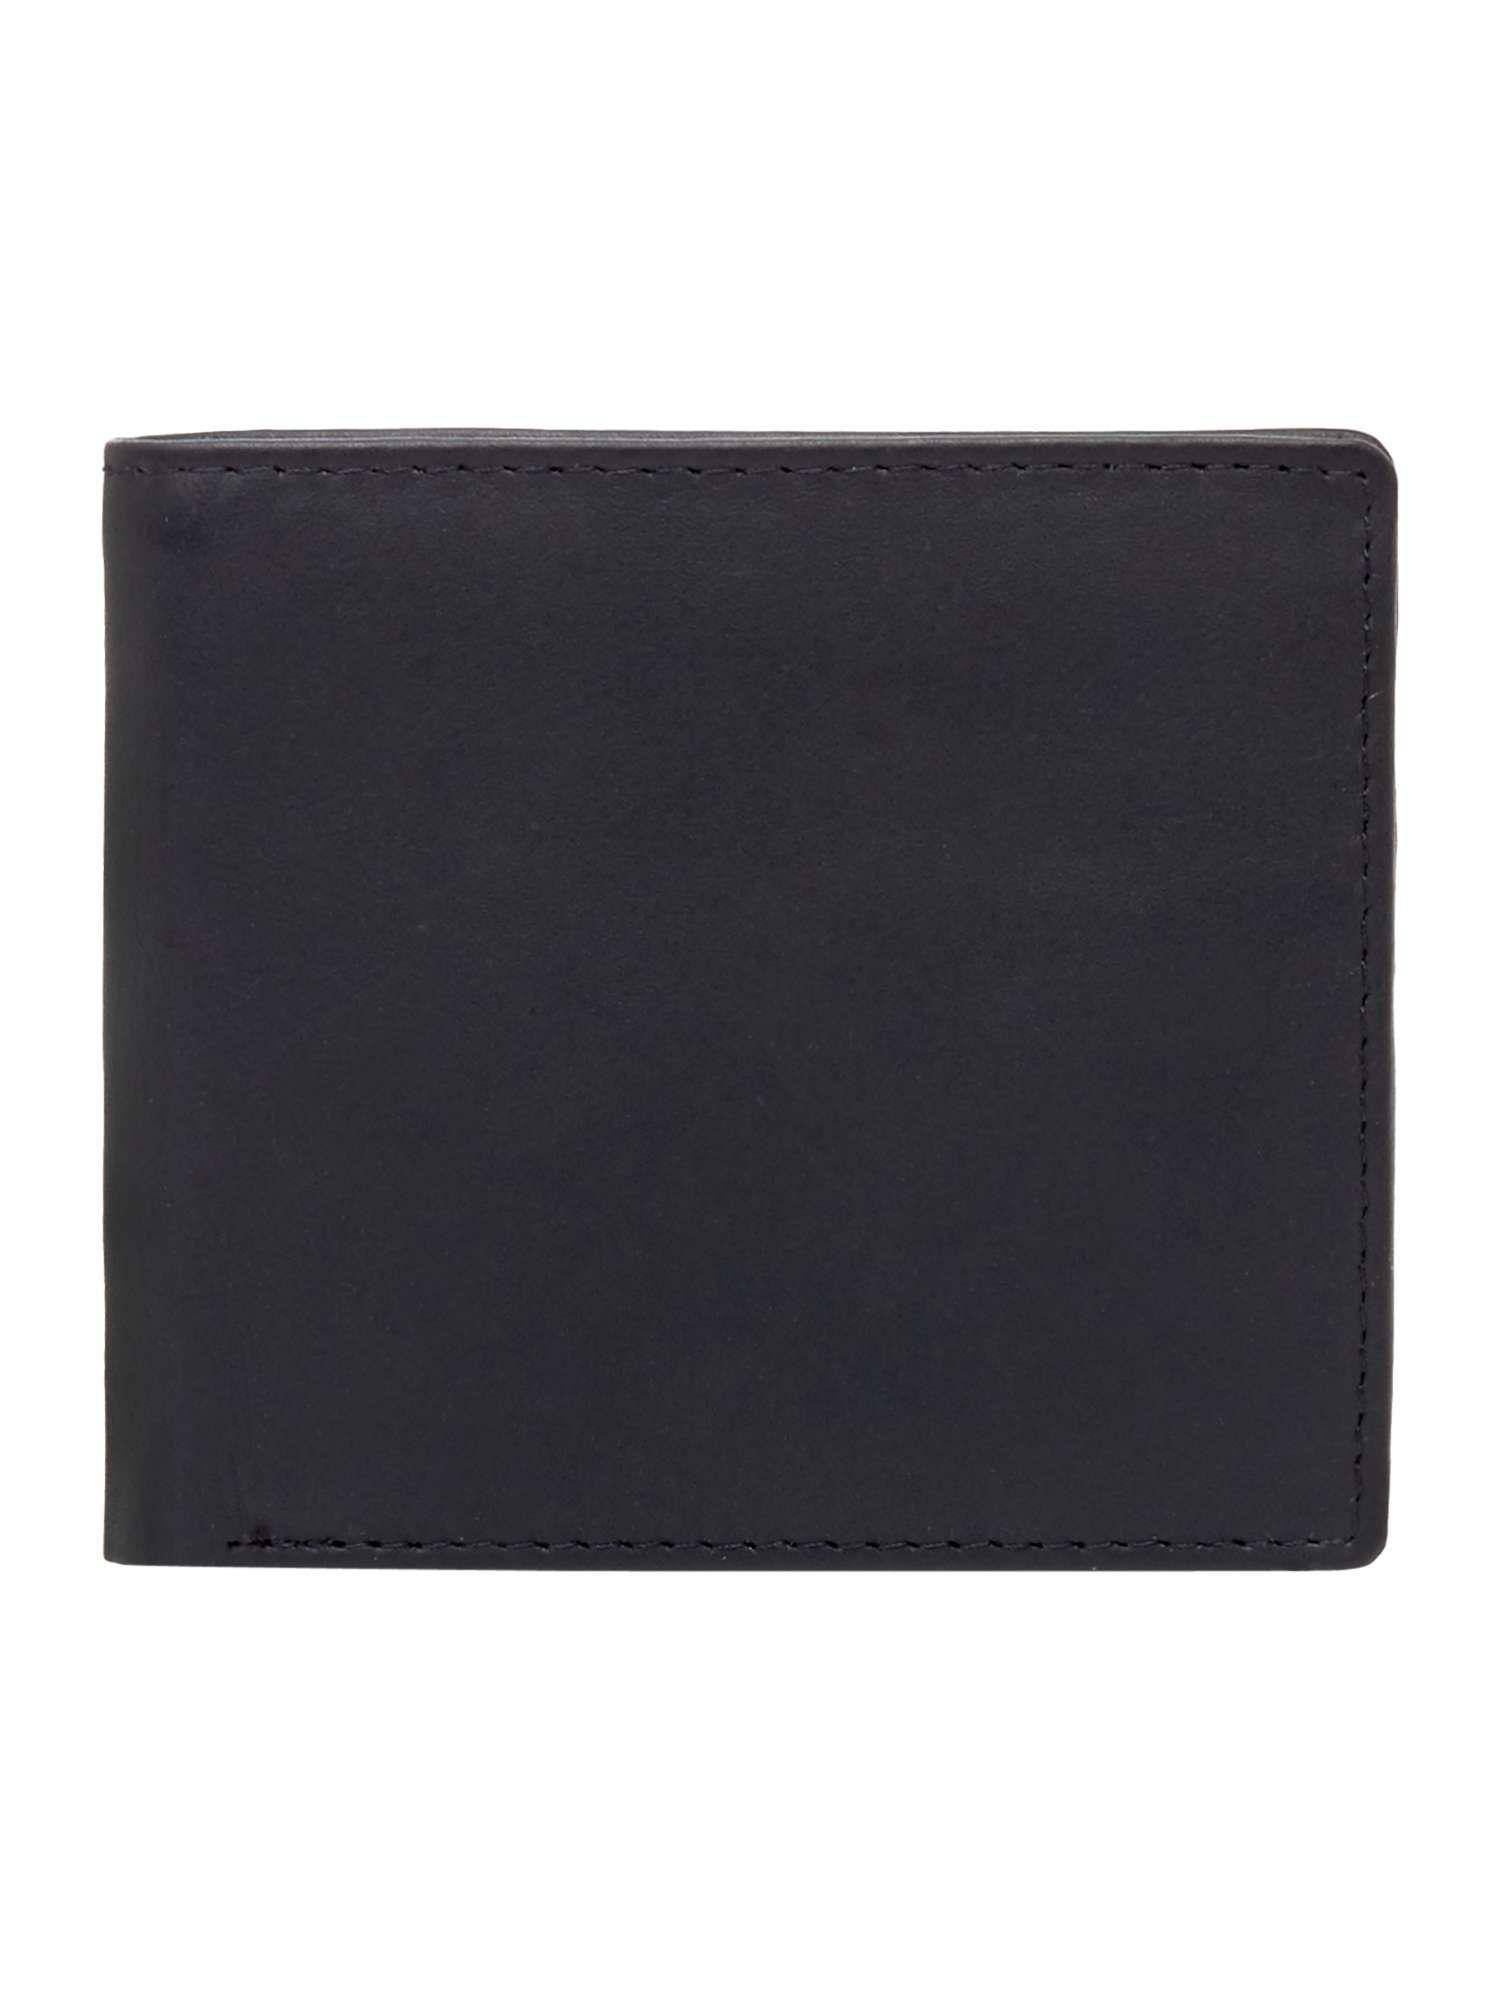 Chester Barrie Leather Notecase Wallet, Black